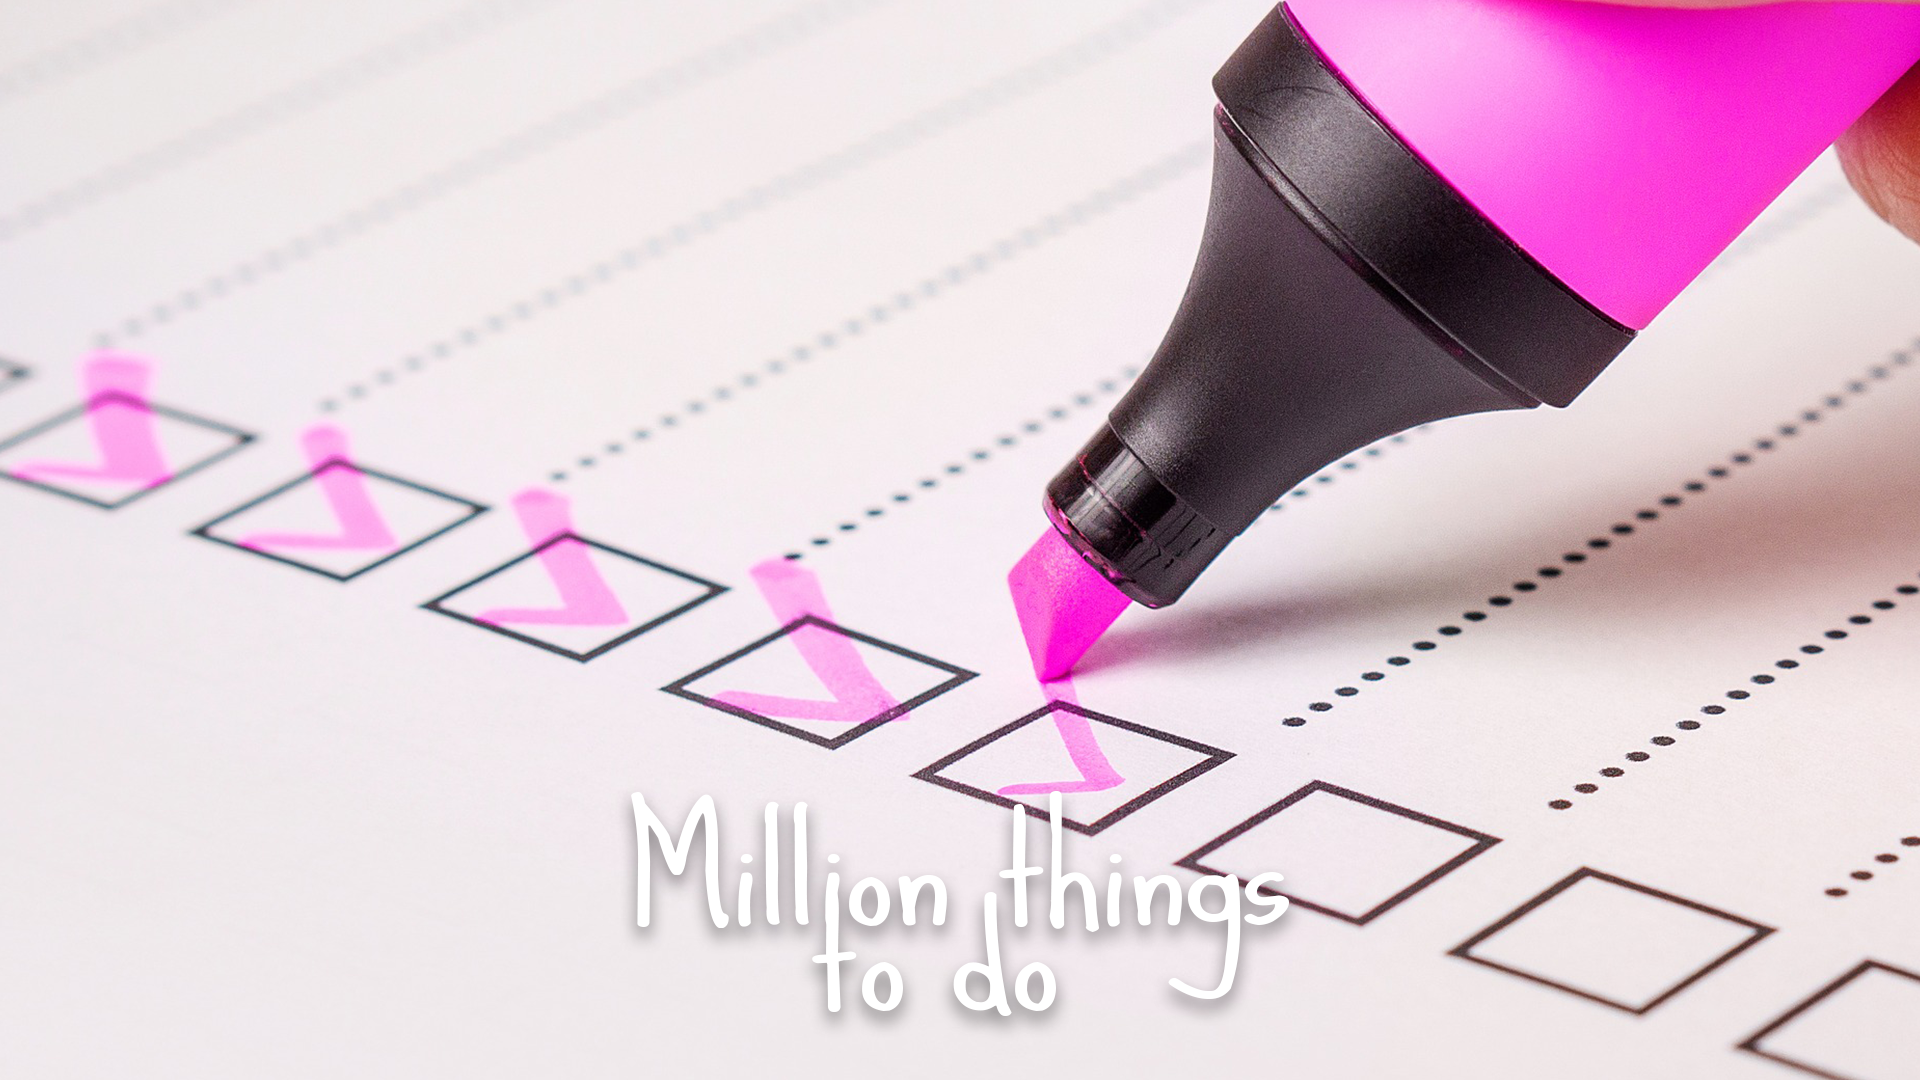 Million things to do